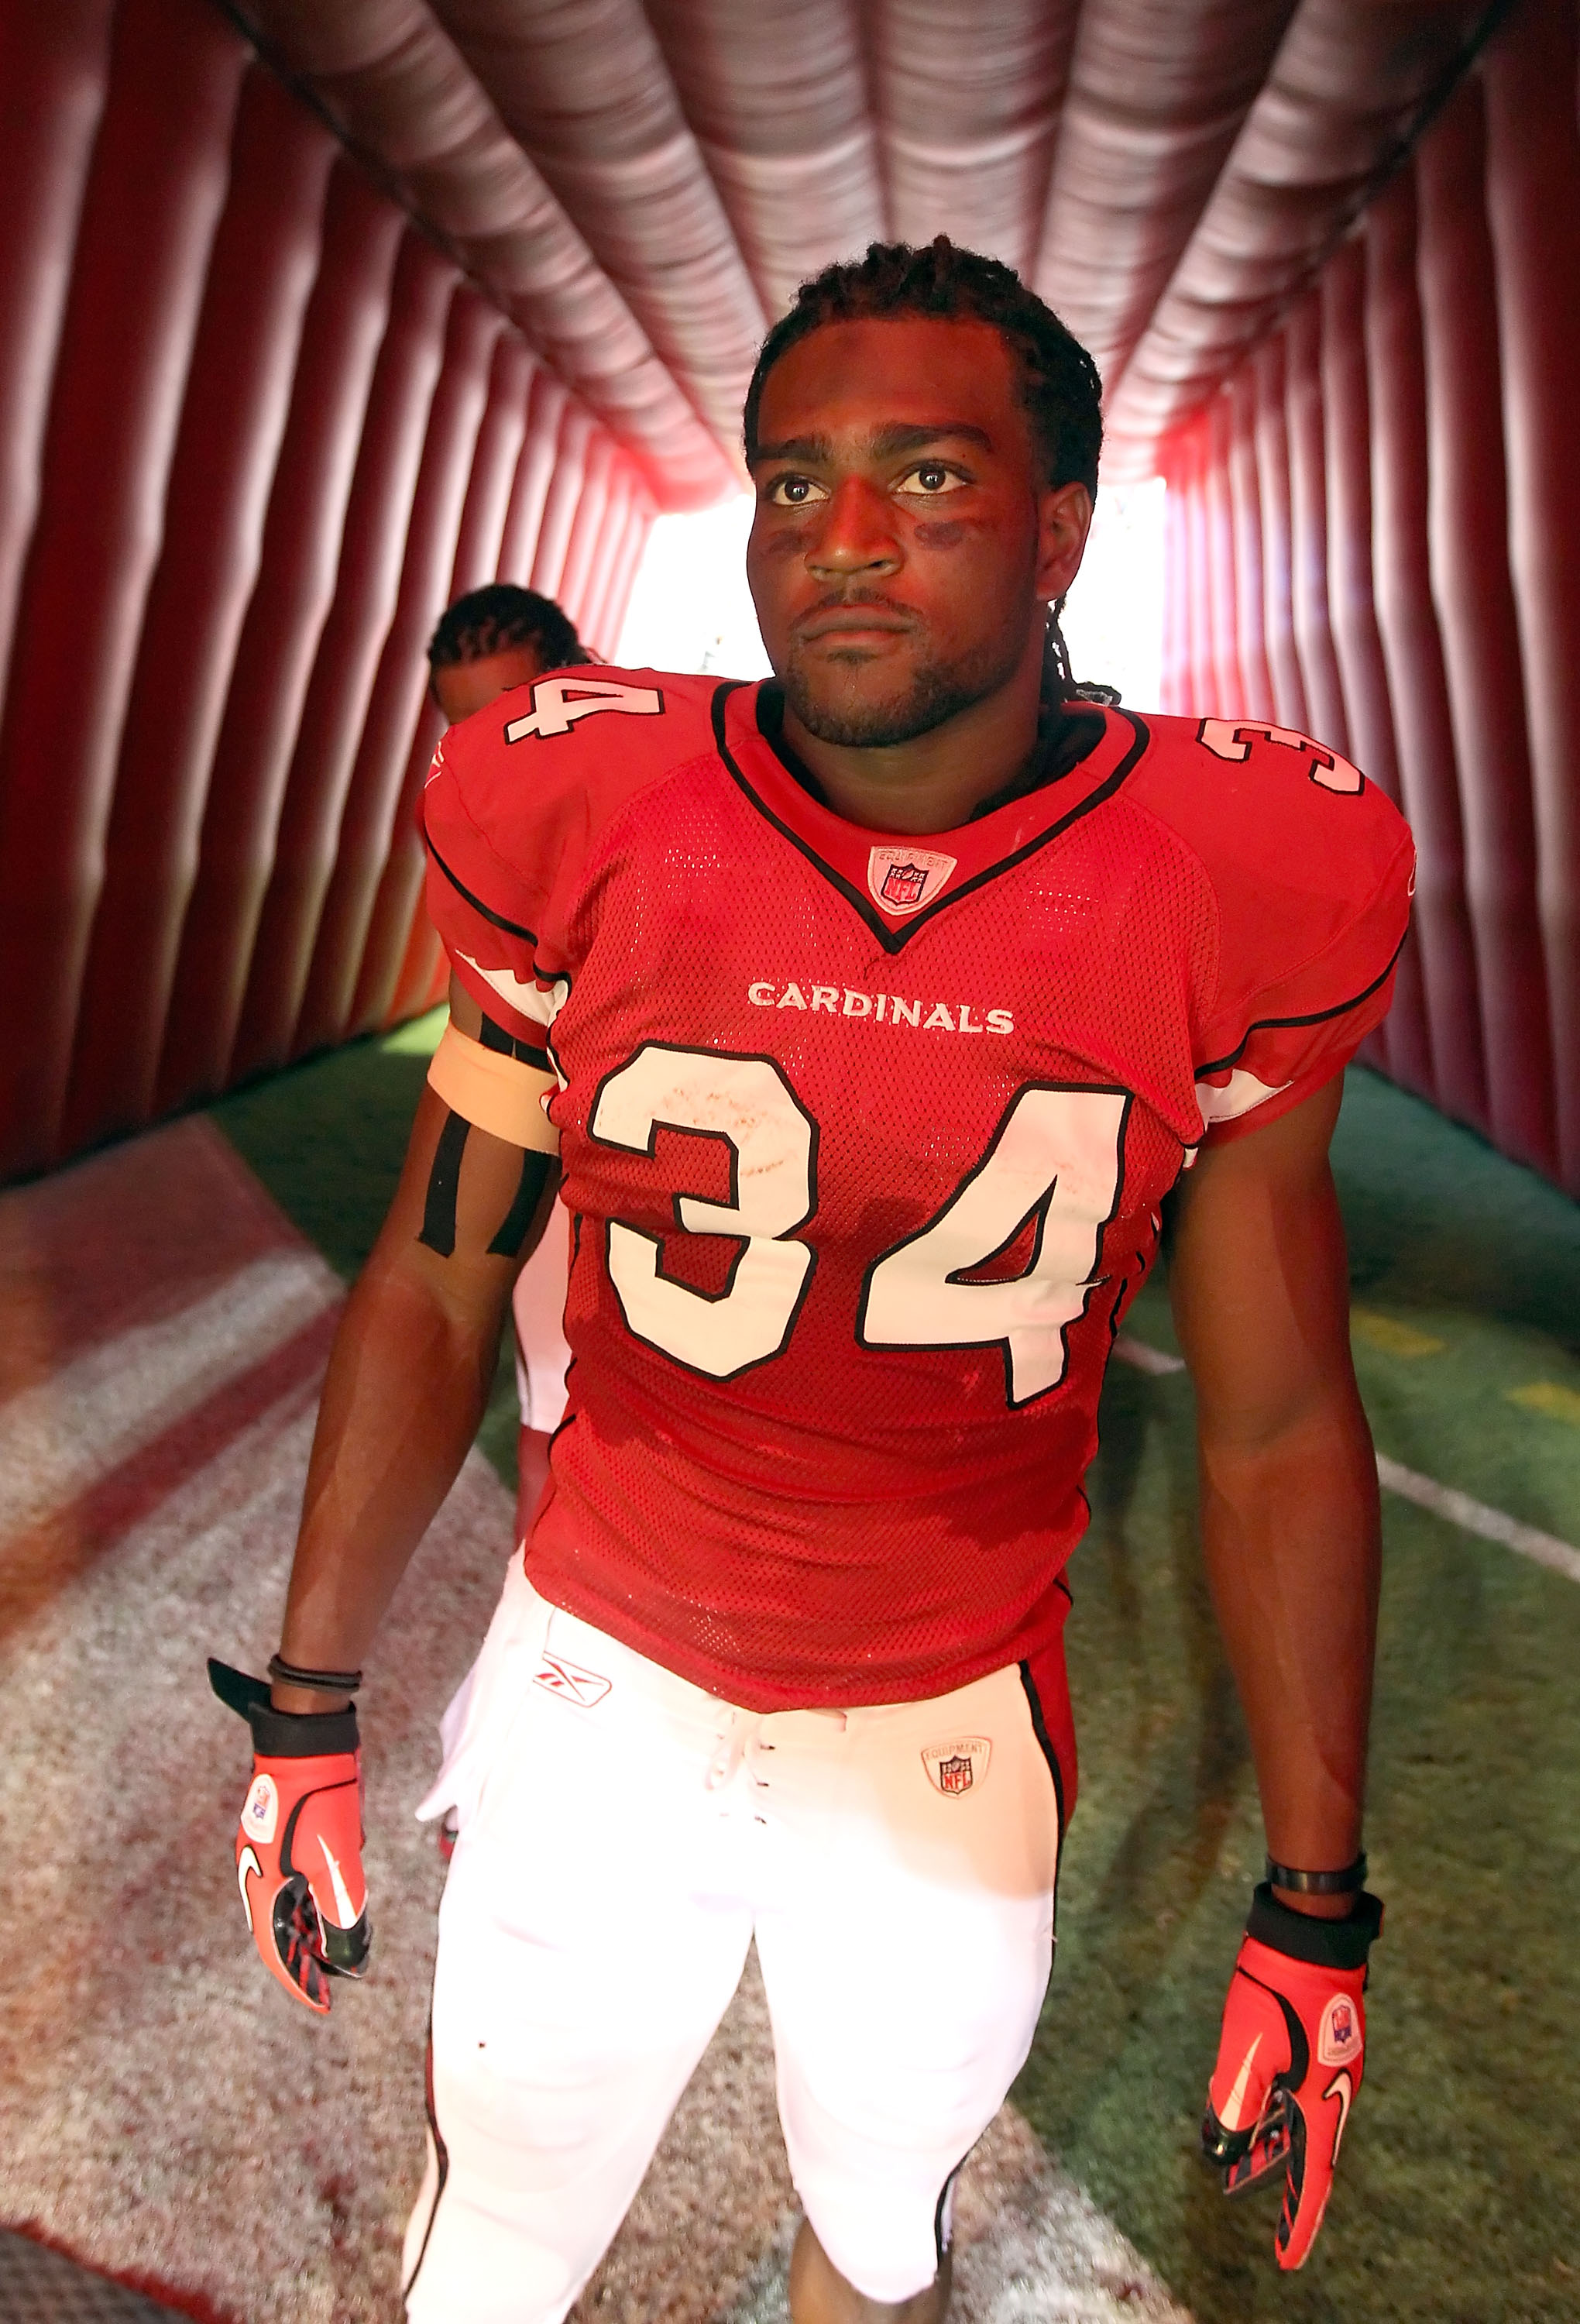 GLENDALE, AZ - SEPTEMBER 26:  Runningback Tim Hightower #34 of the Arizona Cardinals waits to be introduced before the NFL game against the Oakland Raiders at the University of Phoenix Stadium on September 26, 2010 in Glendale, Arizona.  The Cardinals def